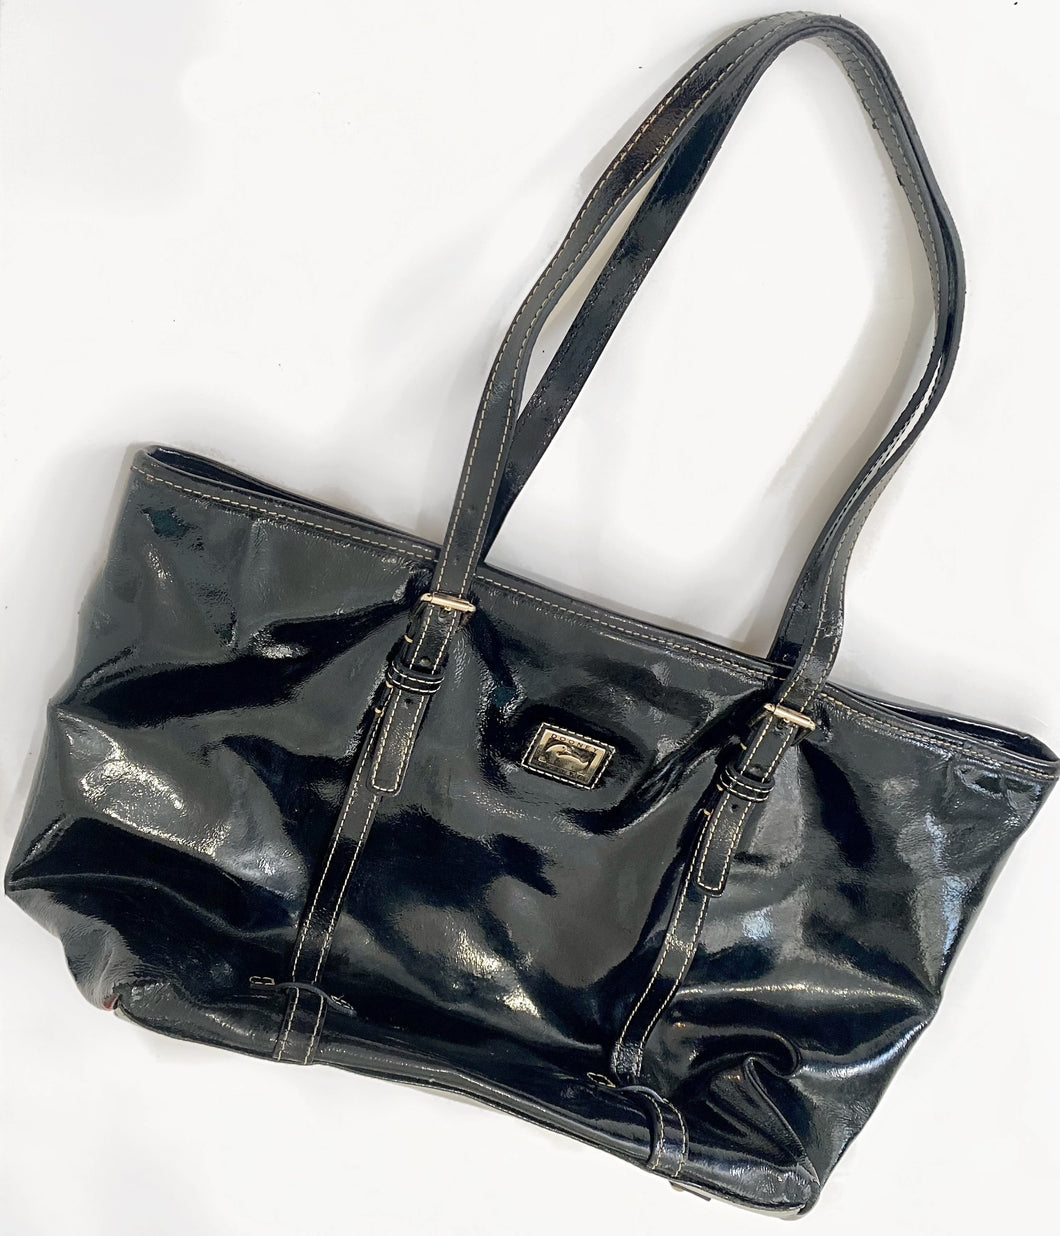 Dooney & Burke Patent Leather Tote